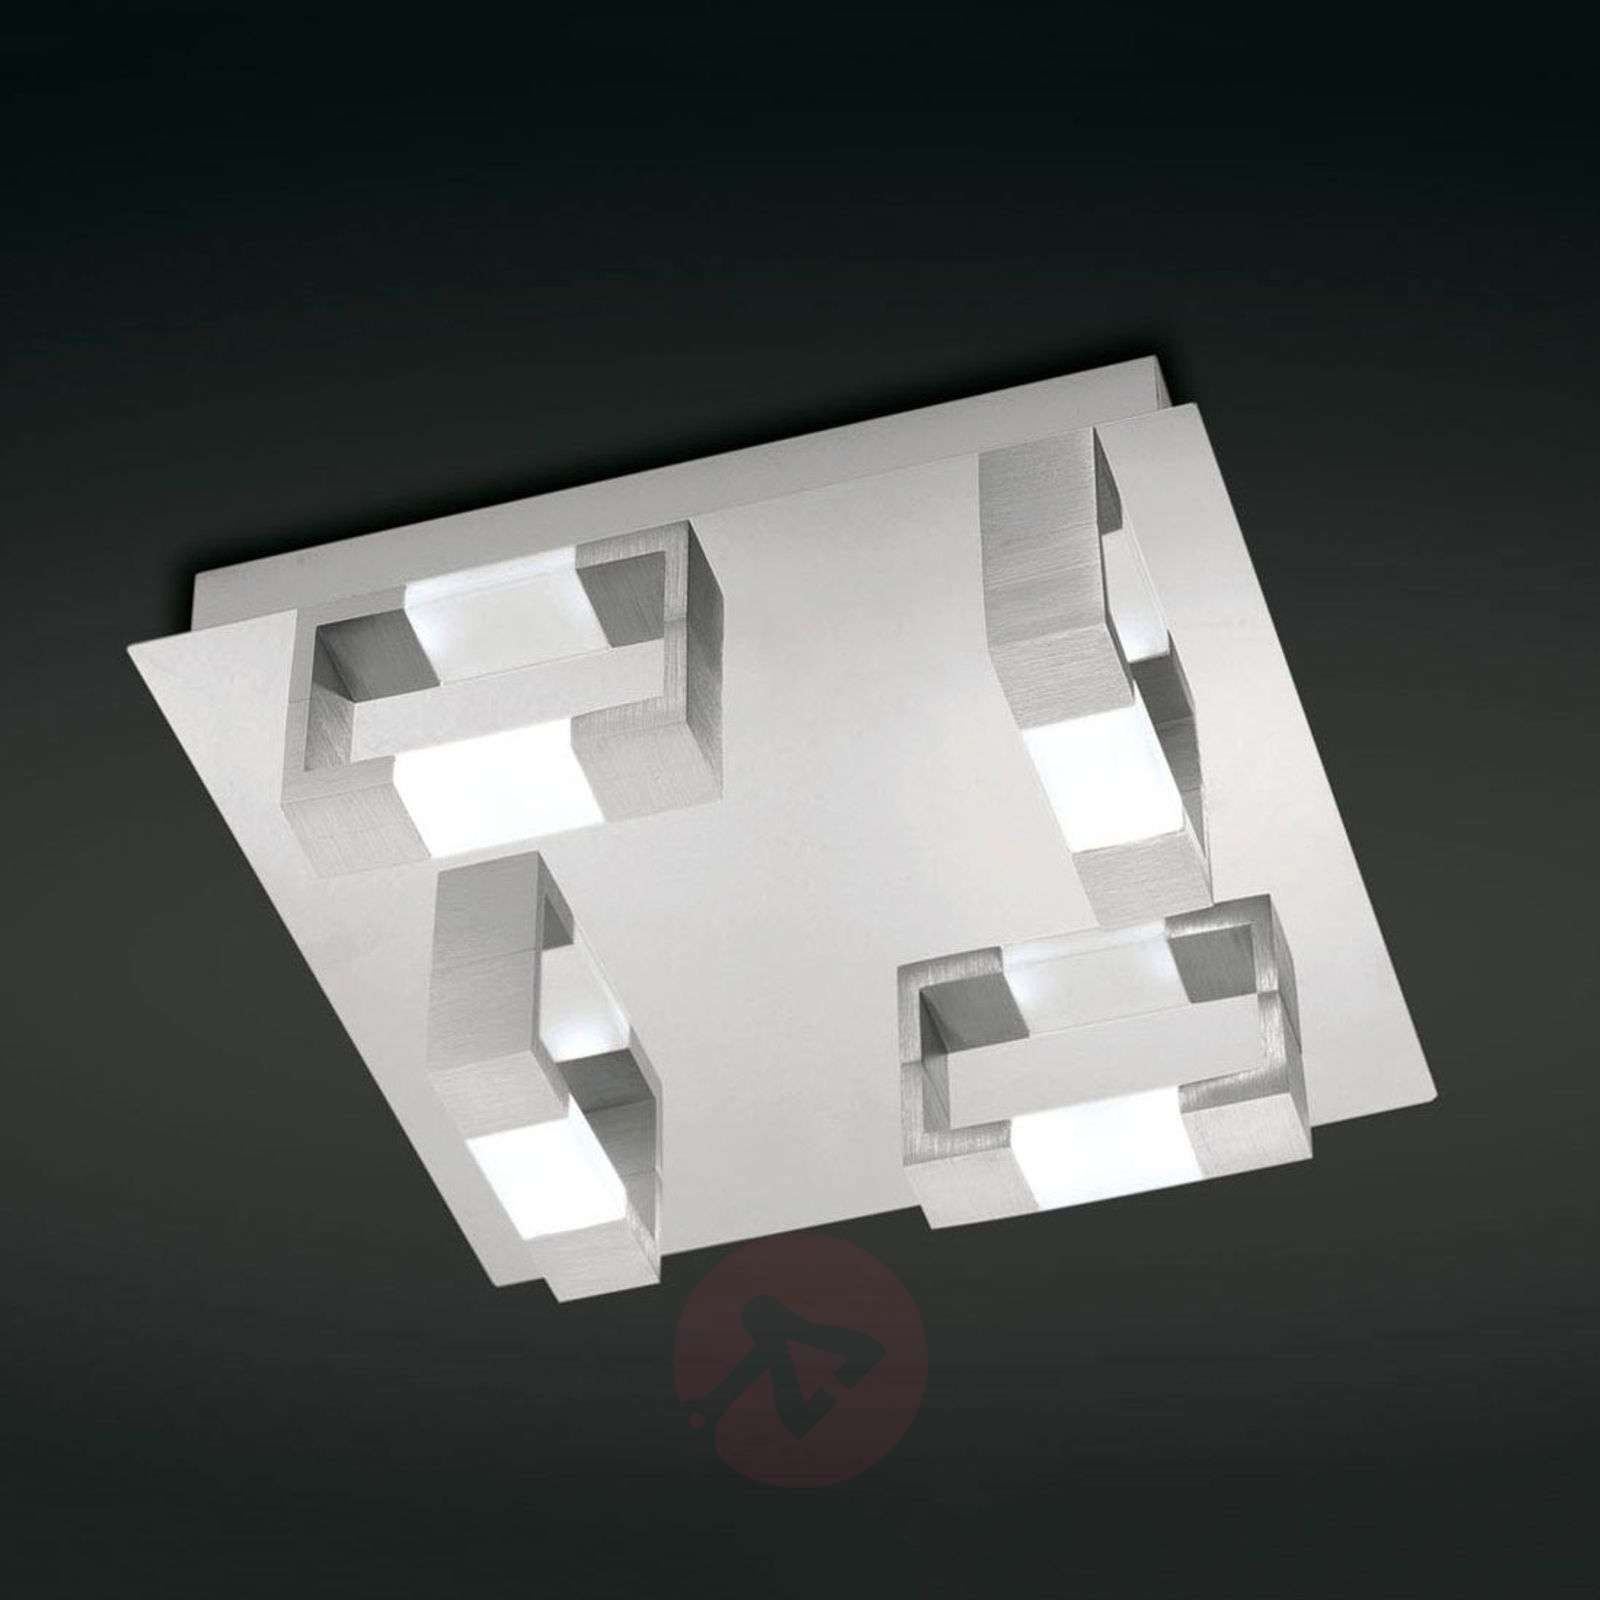 Plafonnier LED rectangulaire Kemos-7610357-01